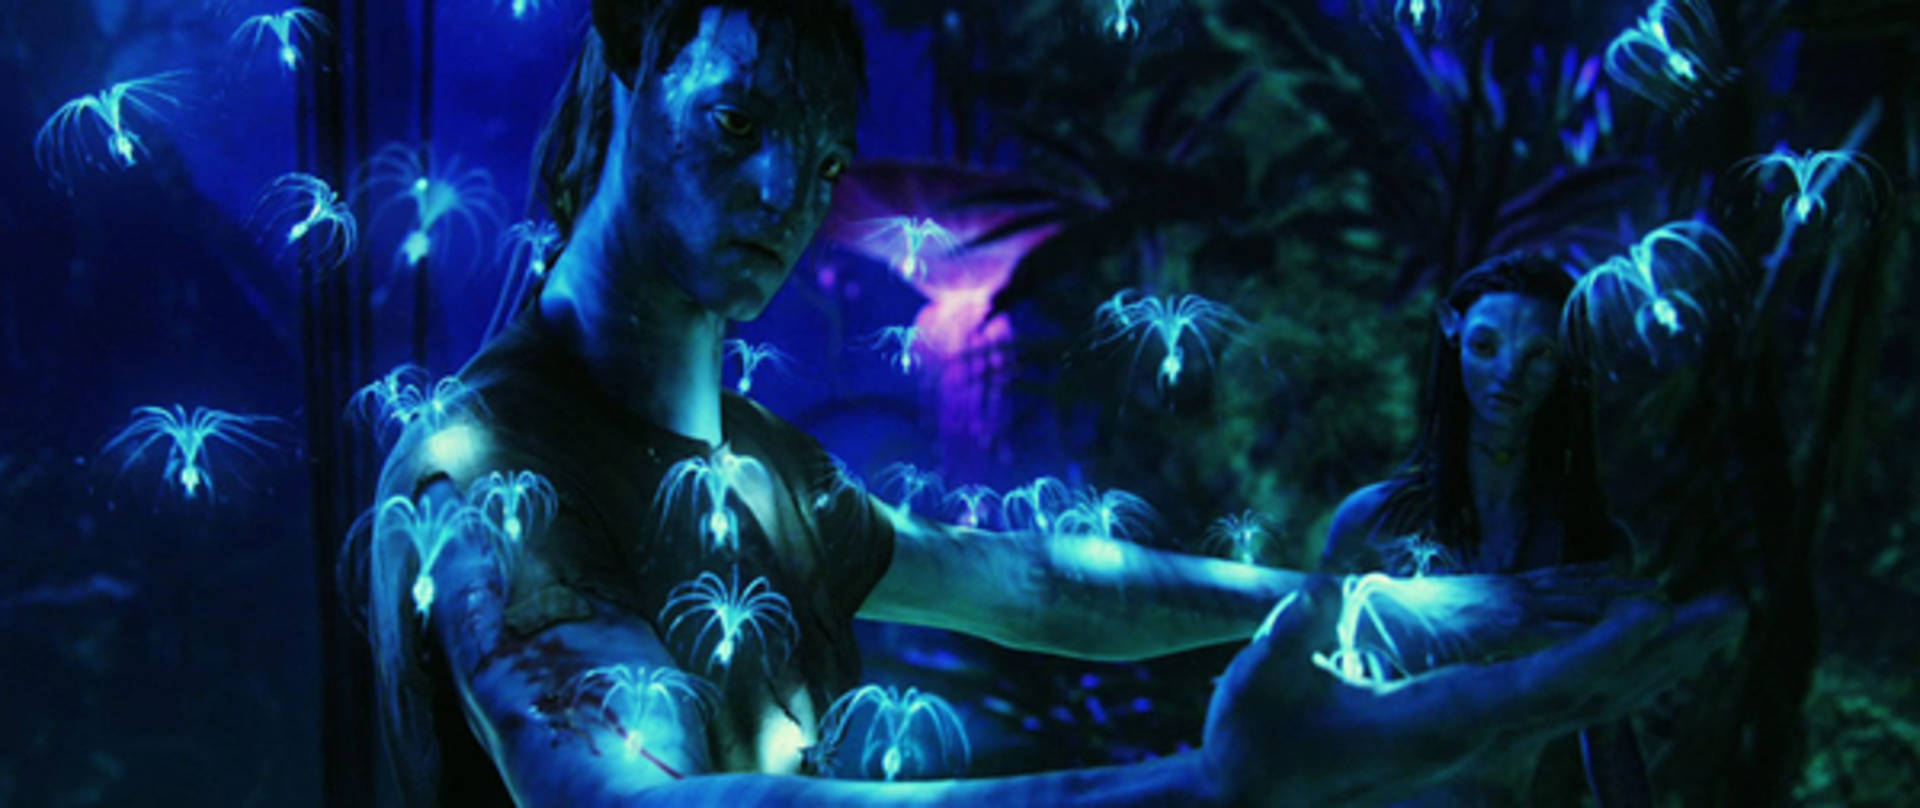 Avatar Bedside Lamp For Fans Of The Avatar Movie Home